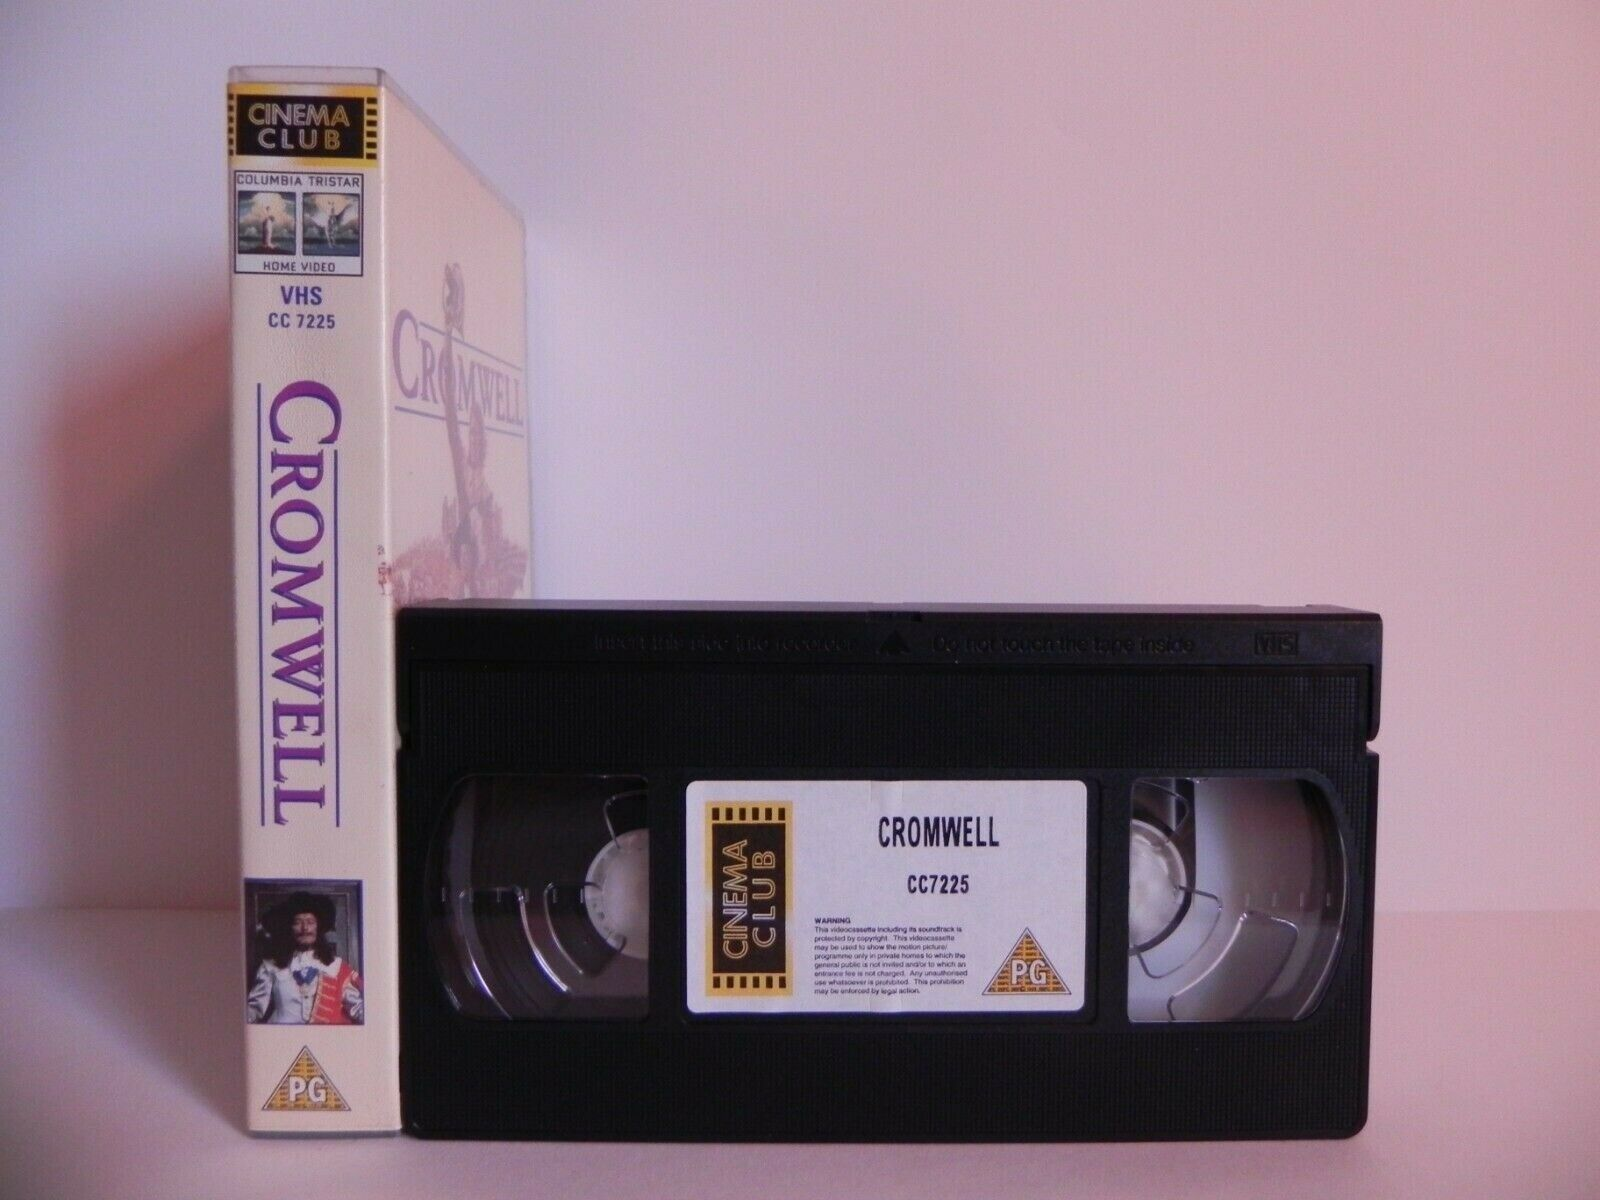 Cromwell - Powerful Story - Civil War - Bloody Battle - Alec Guinness - Pal VHS